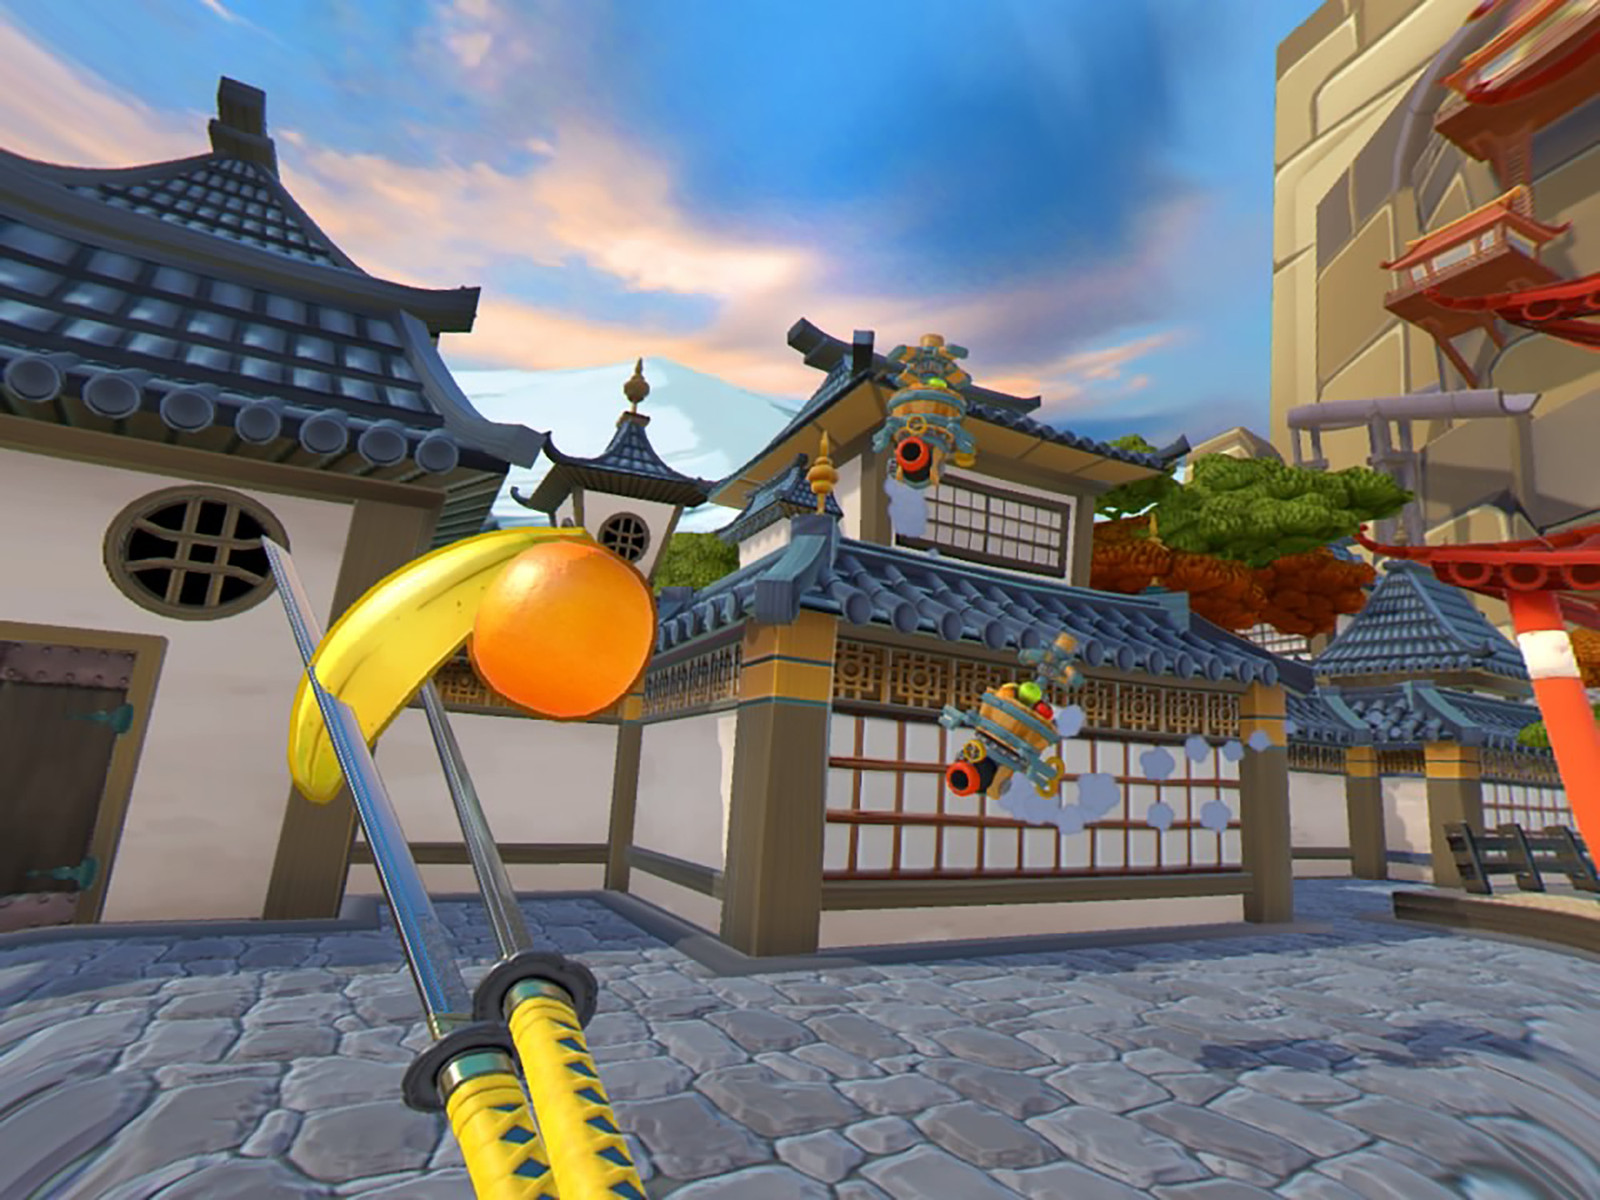 Shoot the fruit - This Is Arguably The Most Difficult Way To Play Fruit Ninja Vr Automated Flying Fruit Launchers Hover Over The Courtyard And Shoot Bundles Of Fruit At You